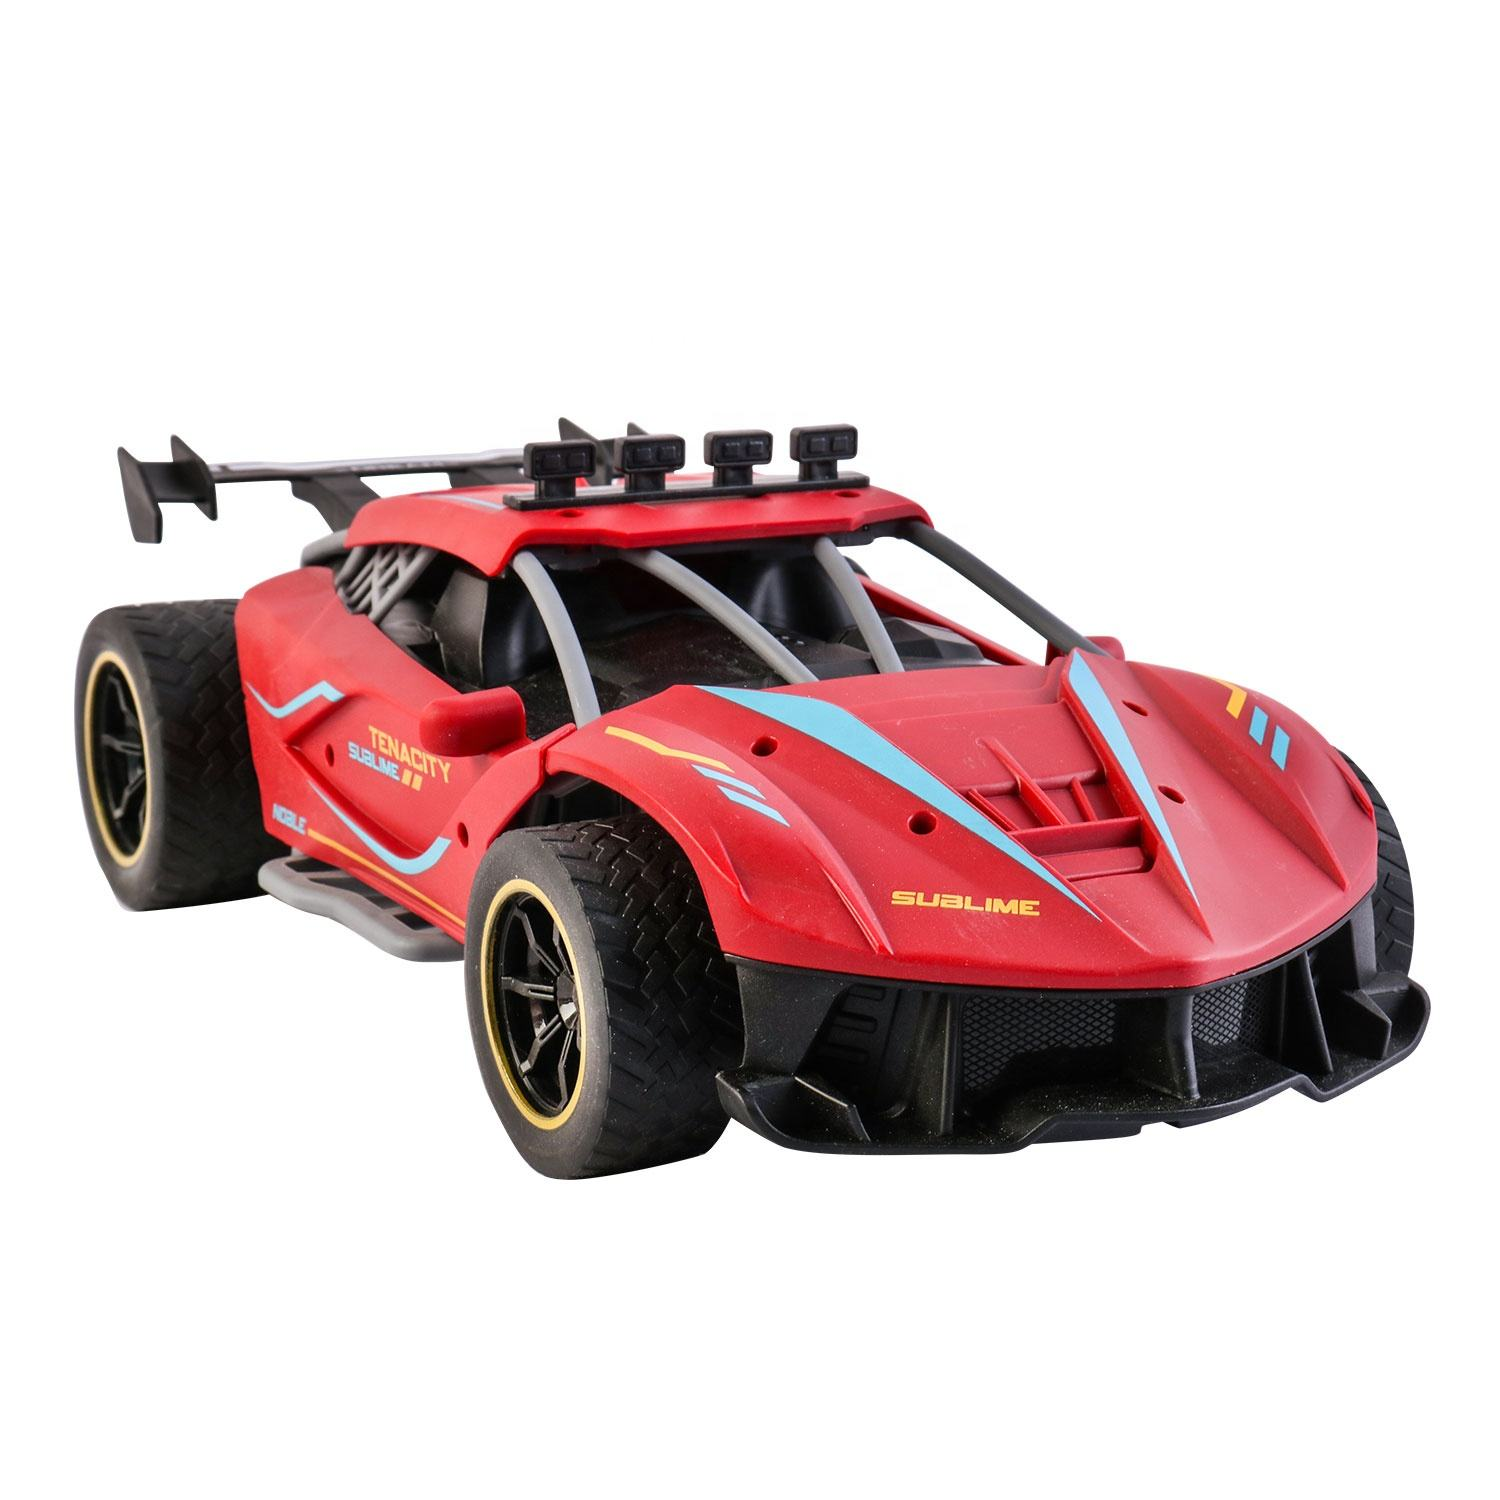 High Speed 1:12 Scale Racing Light Toys Truck Rc, Electric Drifting Smoking Remote Control Car Spray